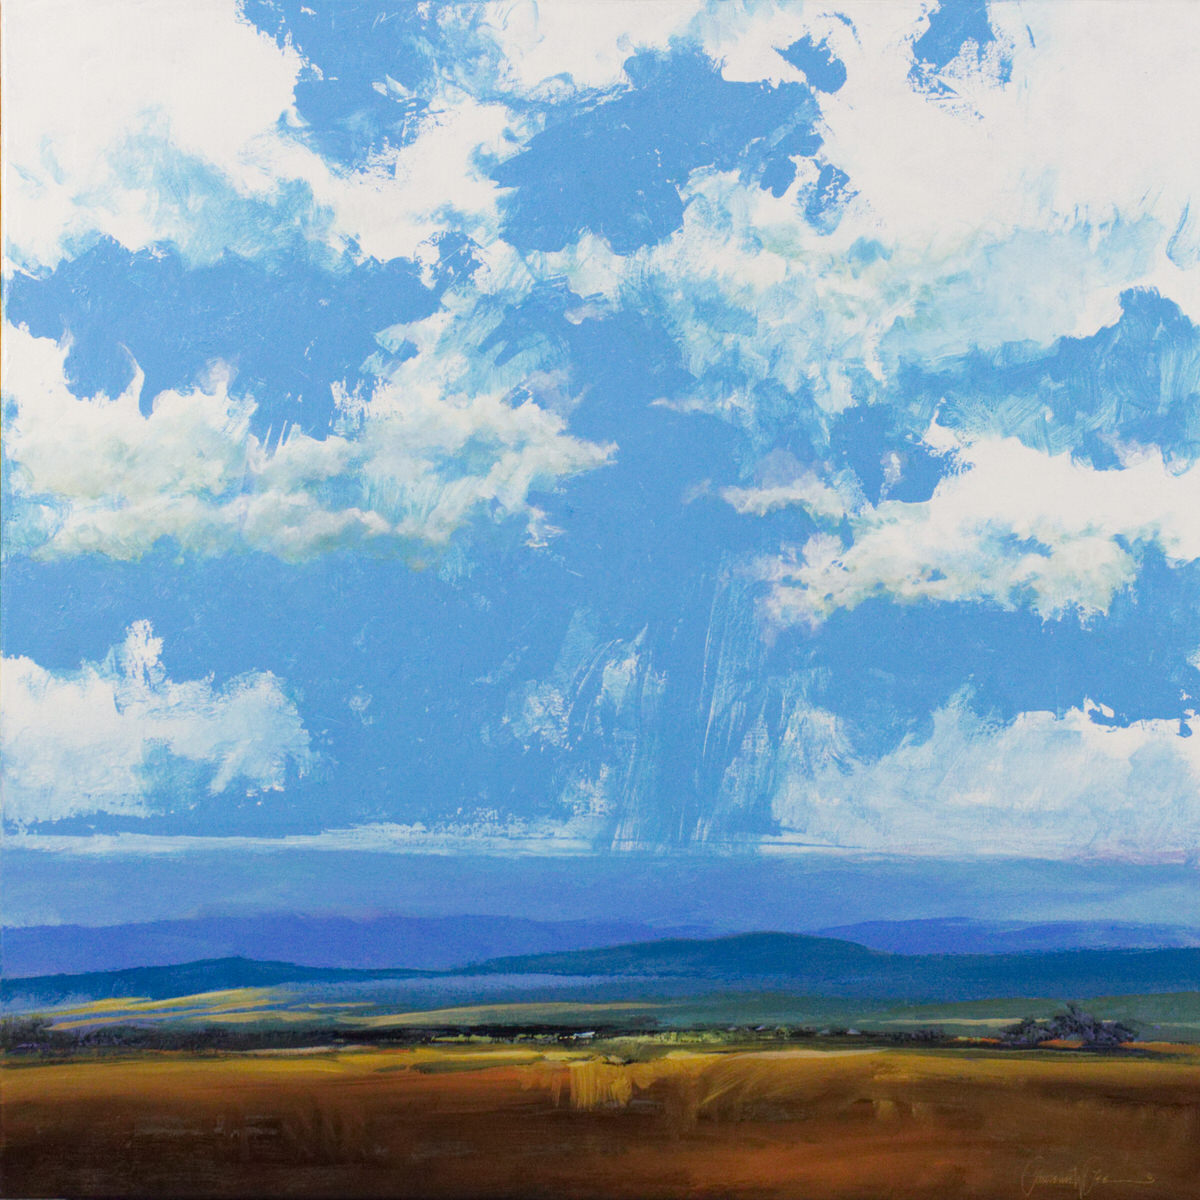 """My Arizona Sky"" 36""x36"" Acrylic on canvas. [SOLD]"